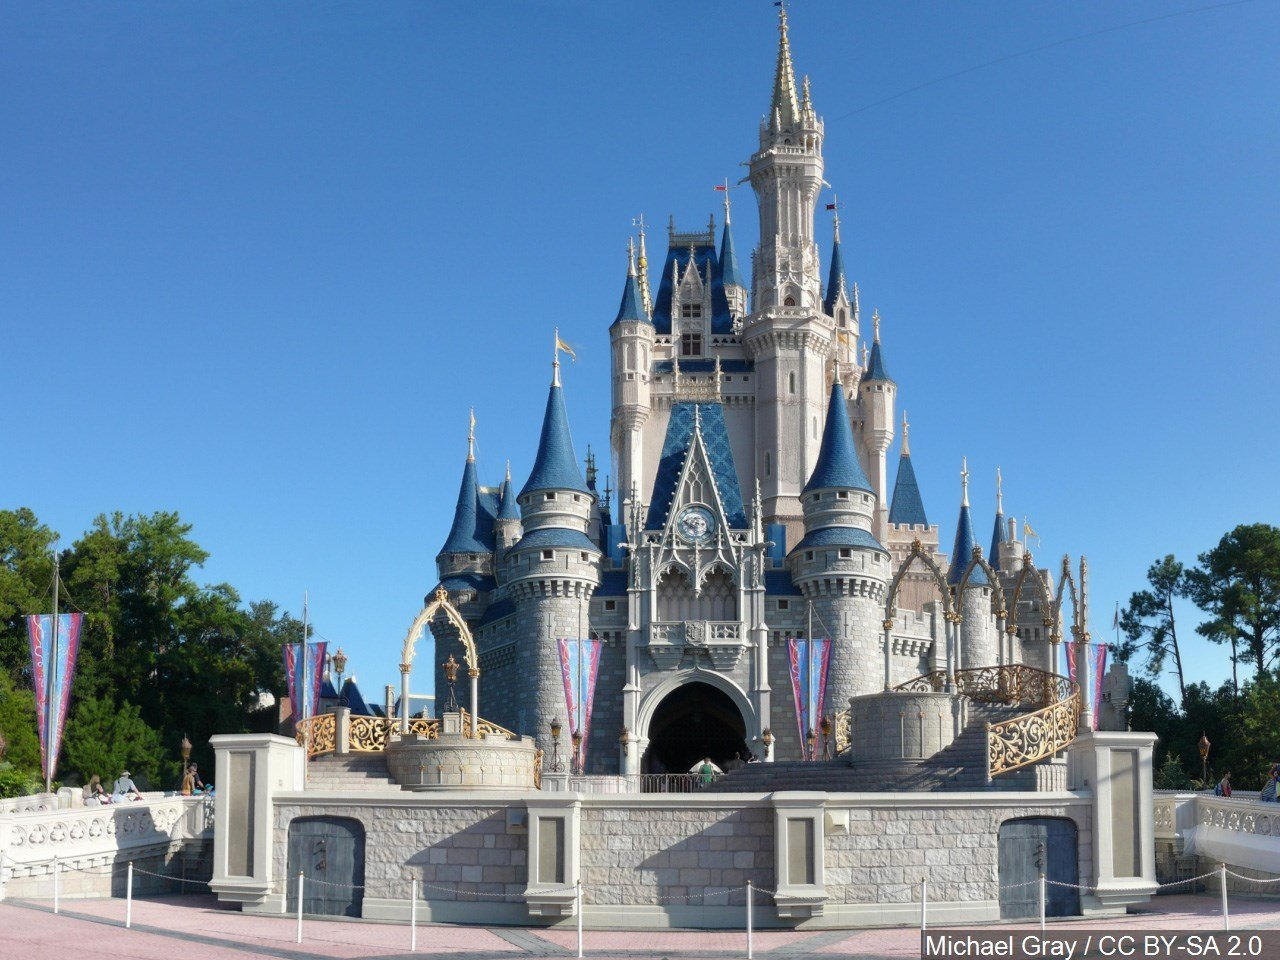 Disney World in Orlando / Courtesy of MGN Online